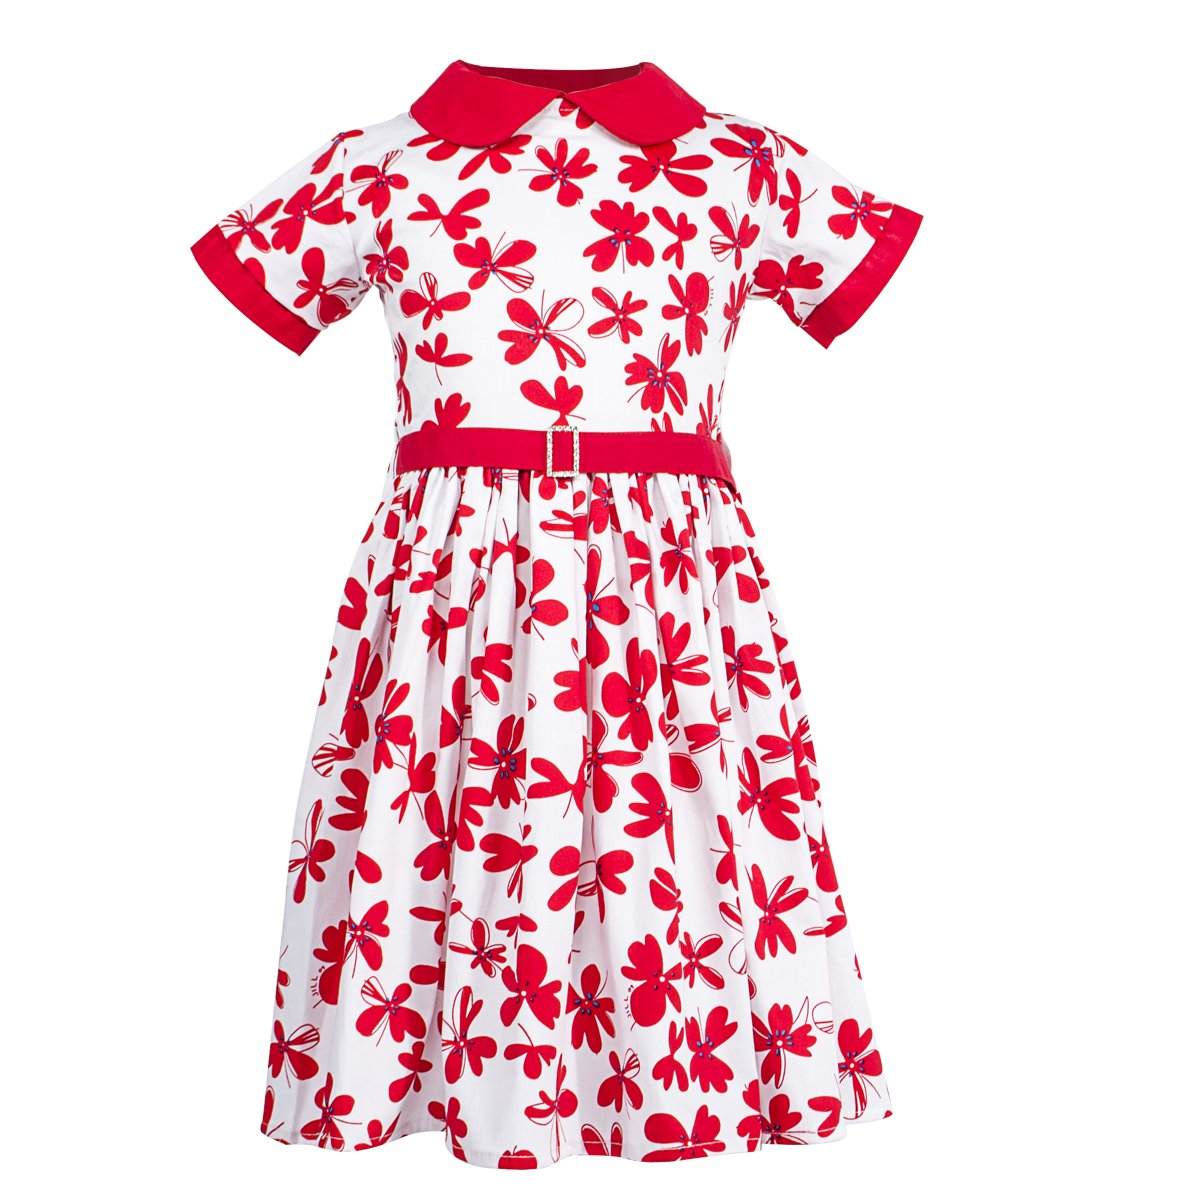 d6155a5b83dea Doll collar cute dresses for girls,fit and attractive.Print Dress let your  girls more fashionable and beautiful